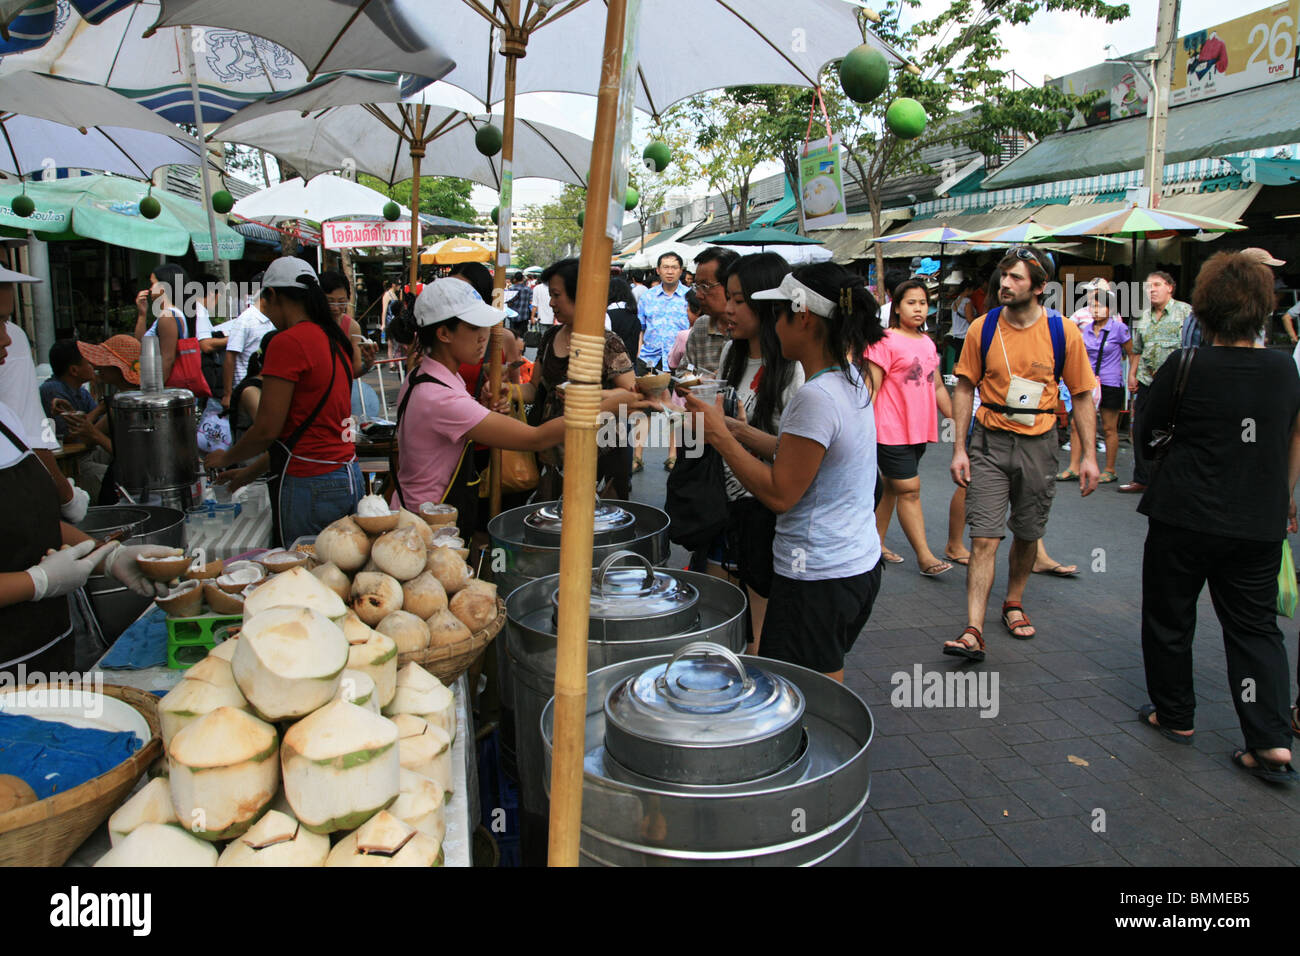 coconut ice cream stall at Chatuchak weekend market, Bangkok - Stock Image